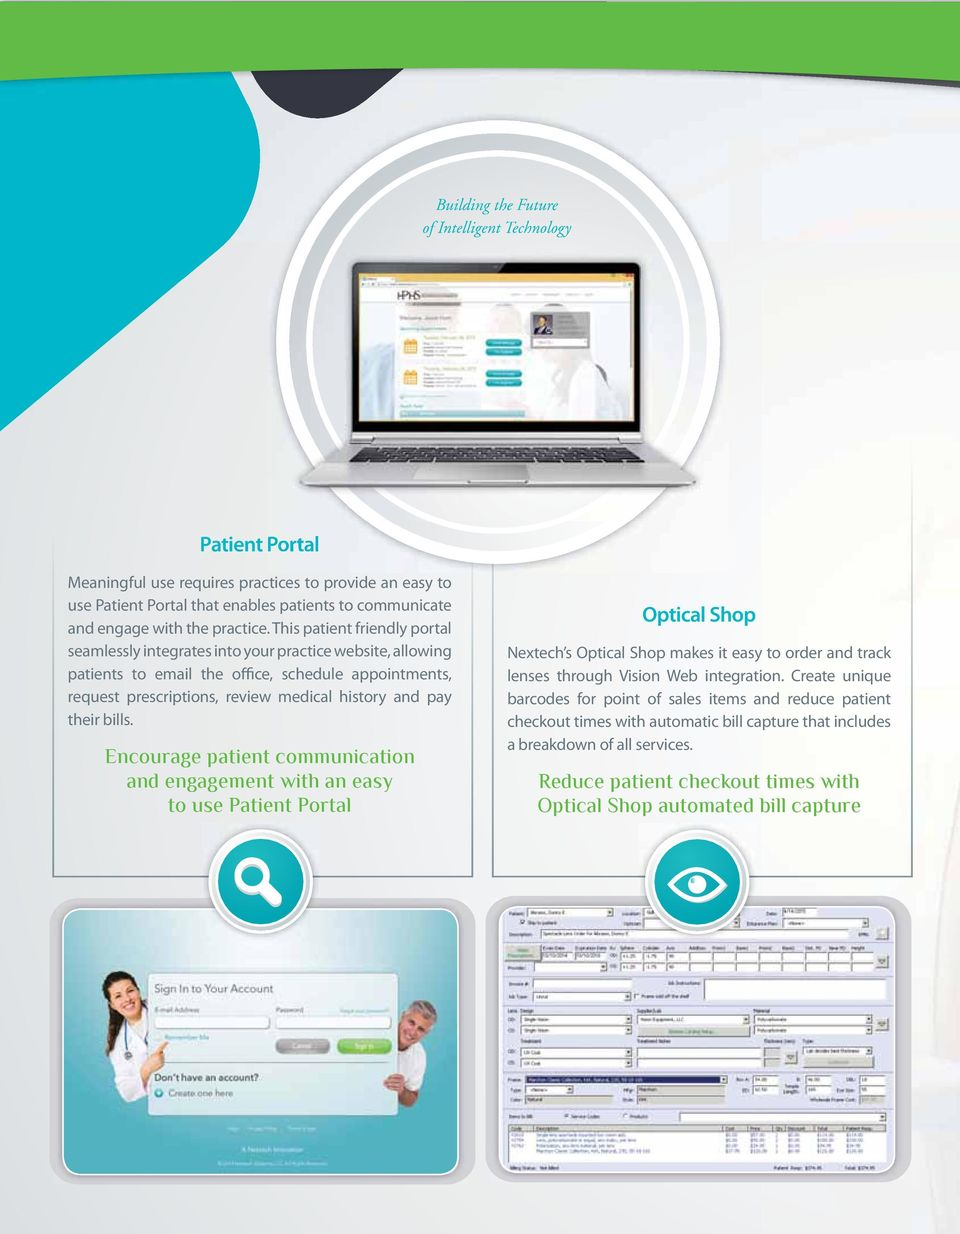 This patient friendly portal seamlessly integrates into your practice website, allowing patients to email the office, schedule appointments, request prescriptions, review medical history and pay